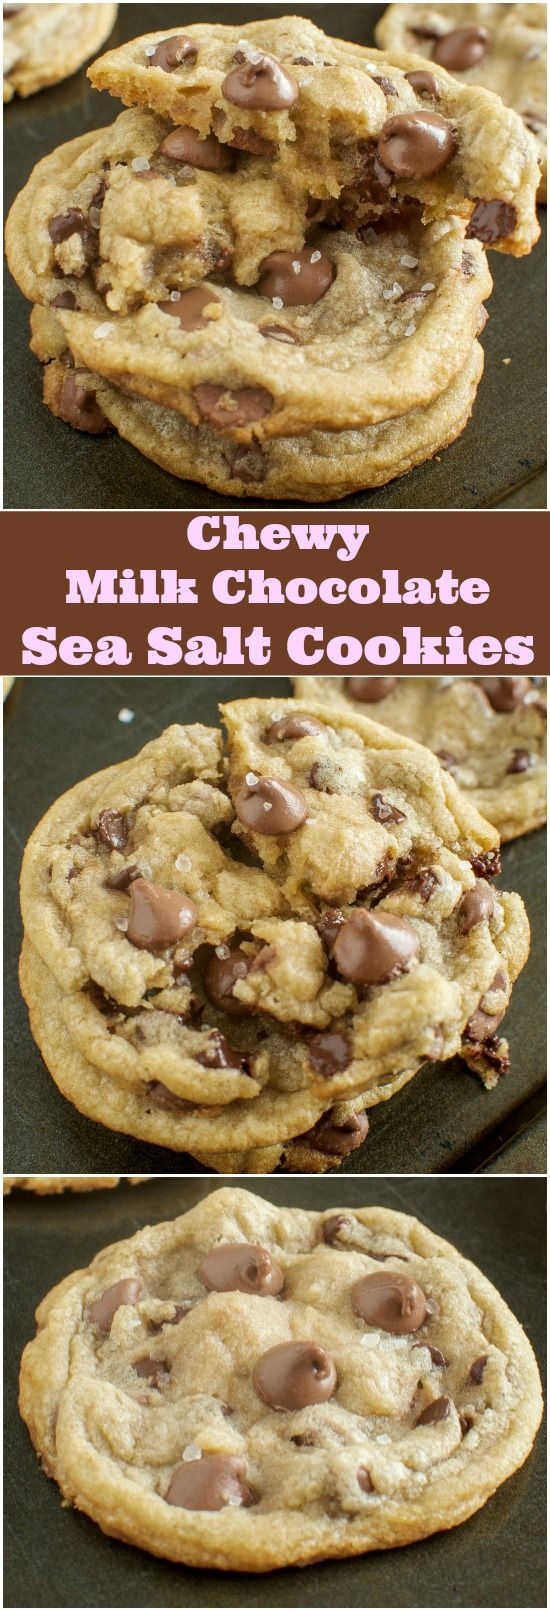 Chewy Milk Chocolate Sea Salt Cookie Recipe - These are AWESOME!!